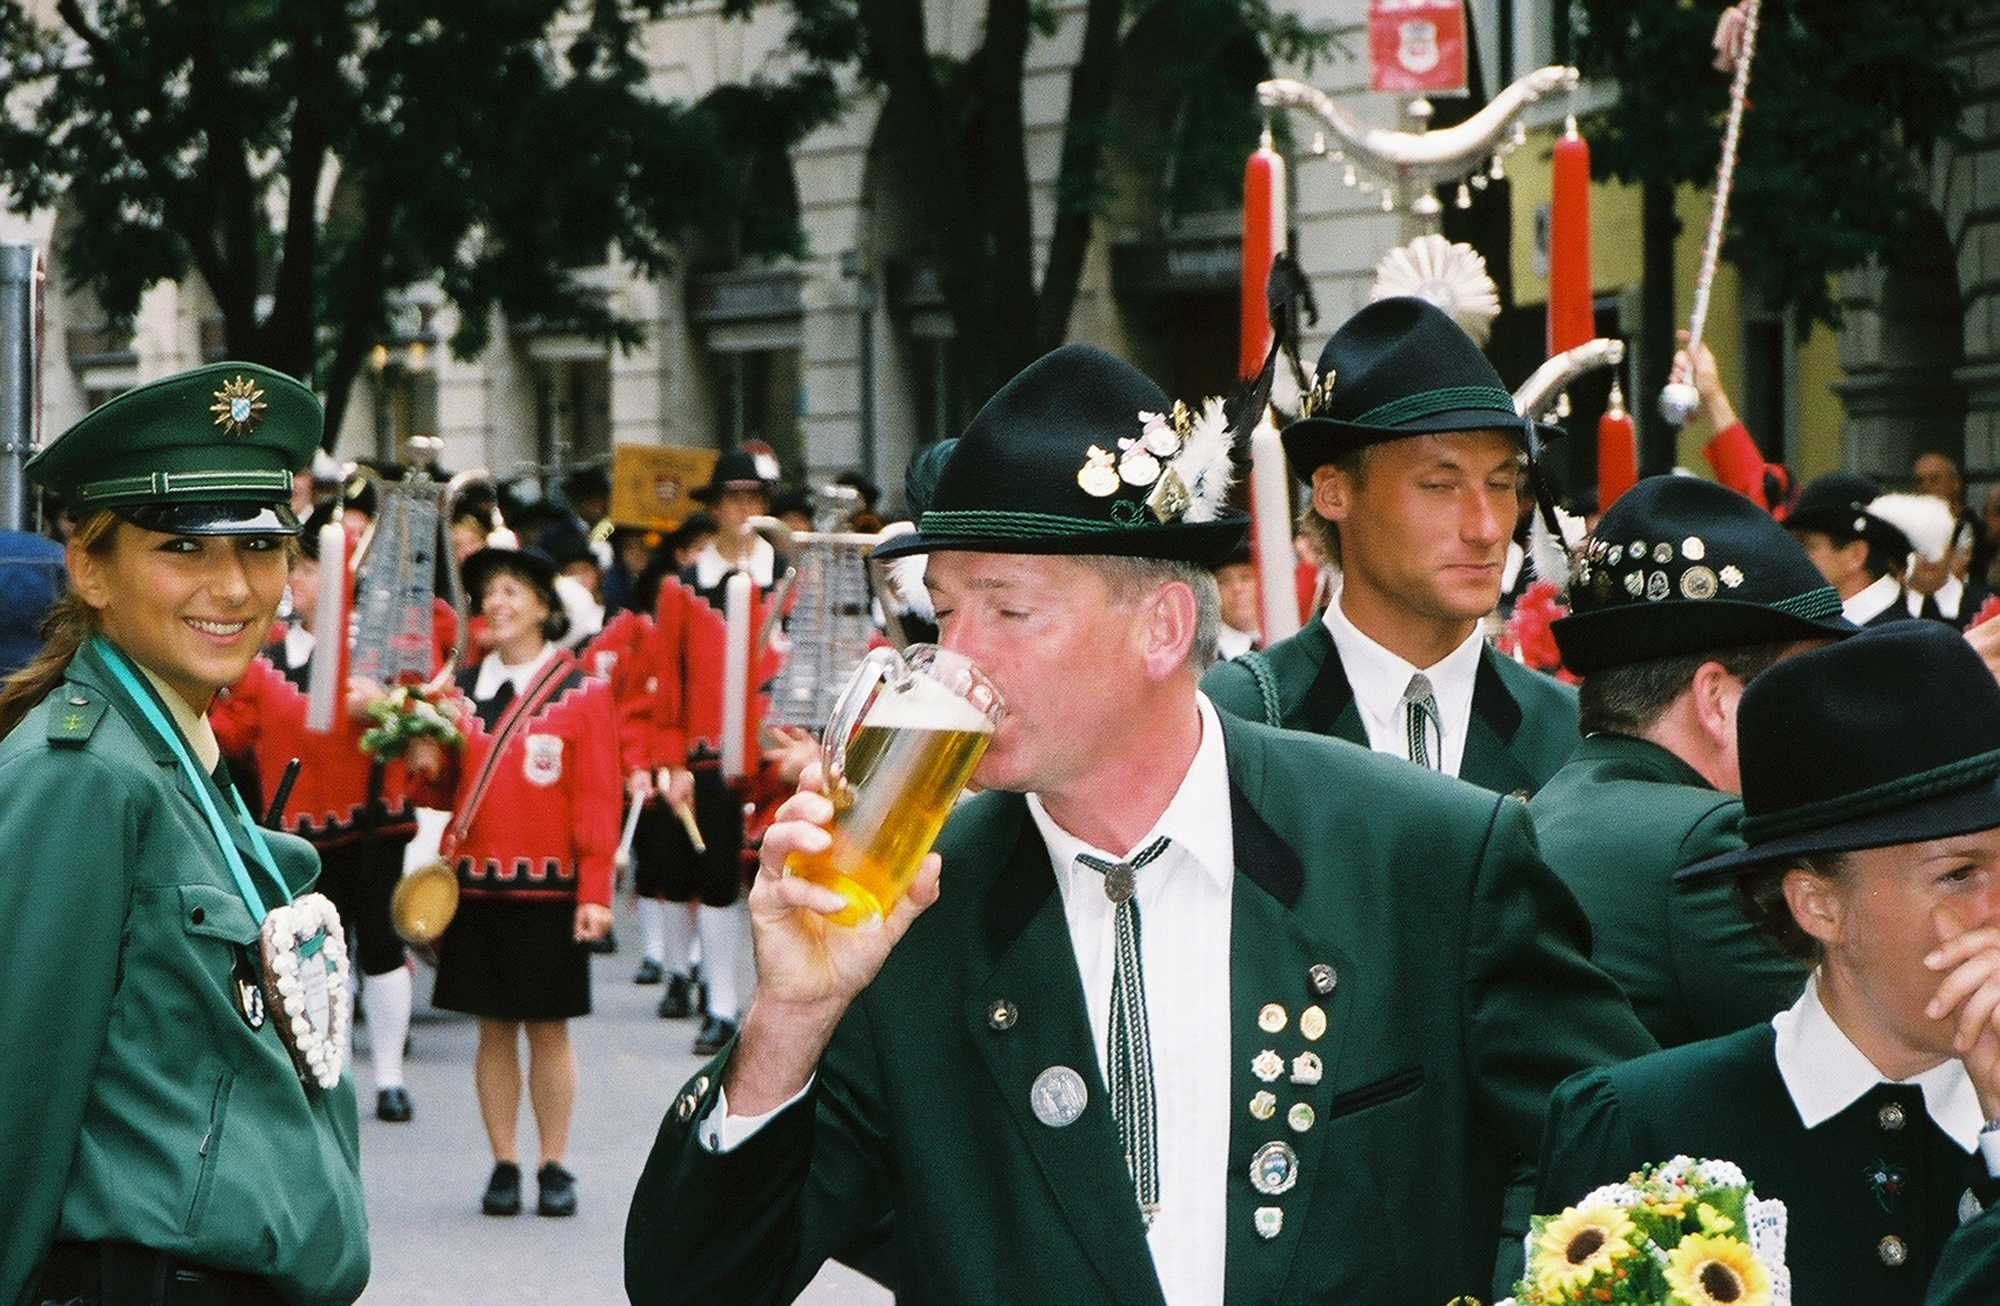 A+parade+marcher+quenches+his+thirst+while+a+policewoman+looks+on+during+the+Oktoberfest+parade+in+Munich%2C+Germany.+%28Thomas+Swick%2FSouth+Florida+Sun-Sentinel%2FMCT%29